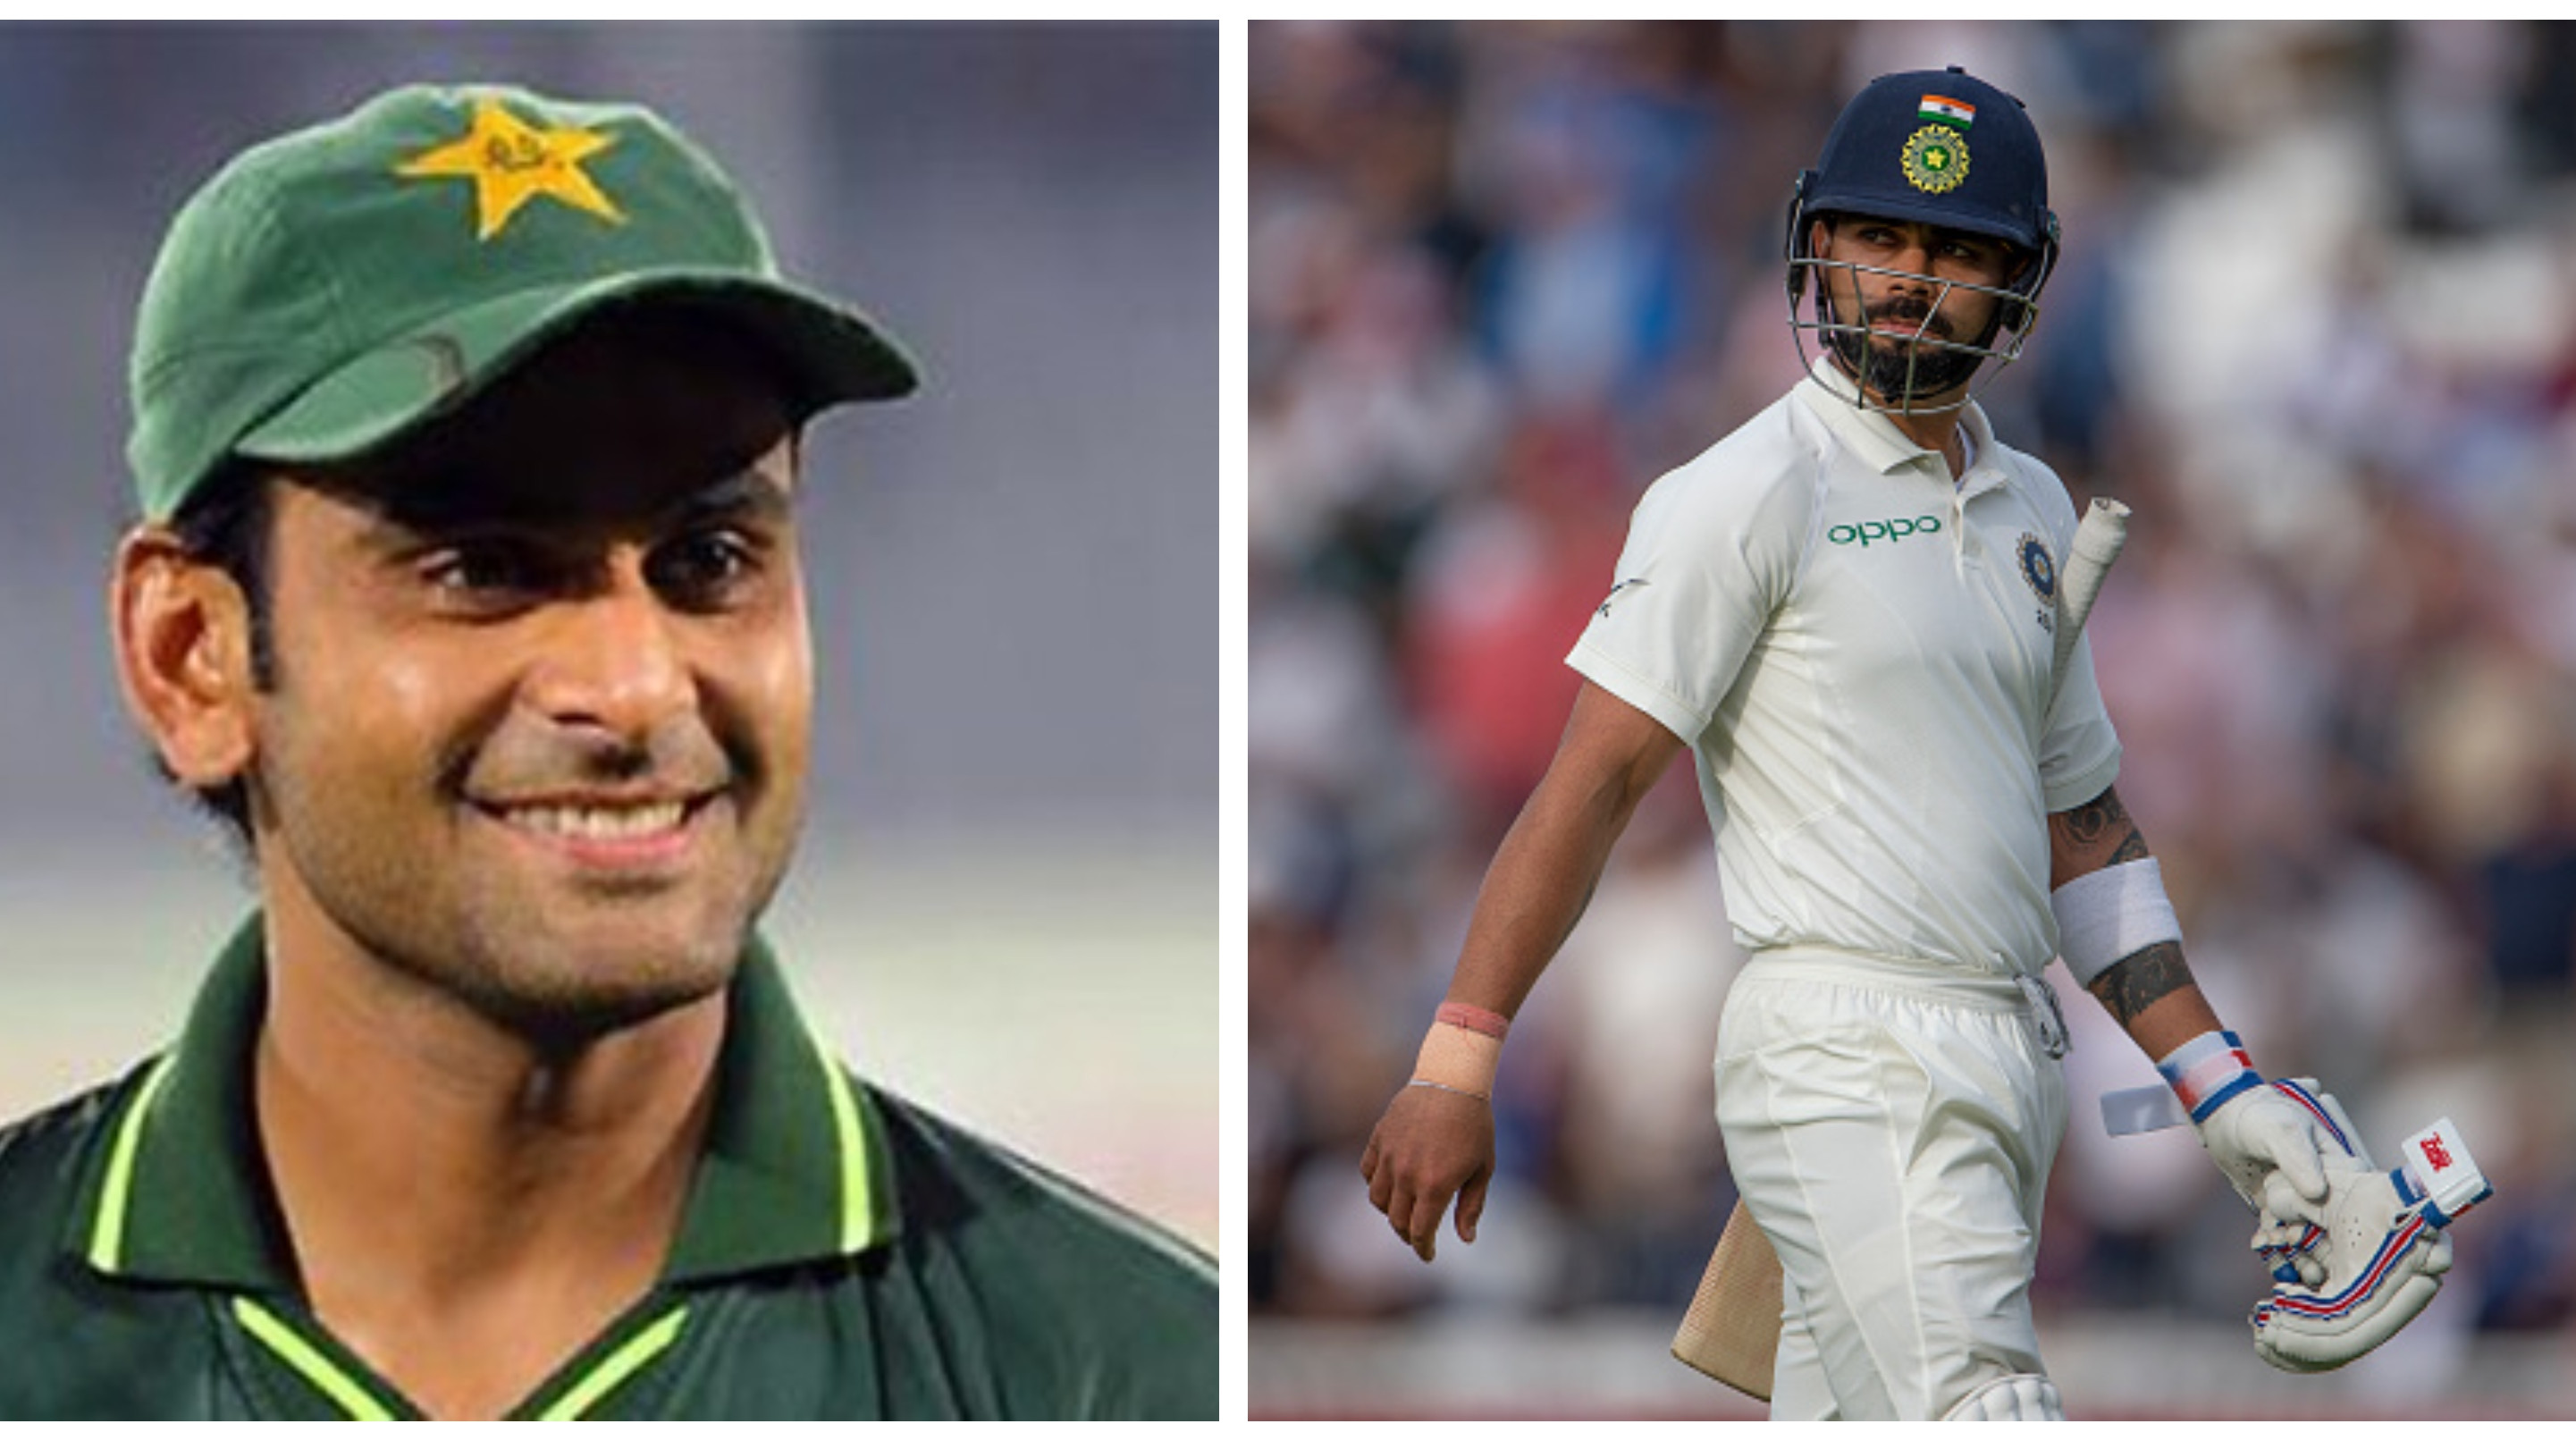 Kohli is head and shoulders above the rest, says Mohammad Hafeez